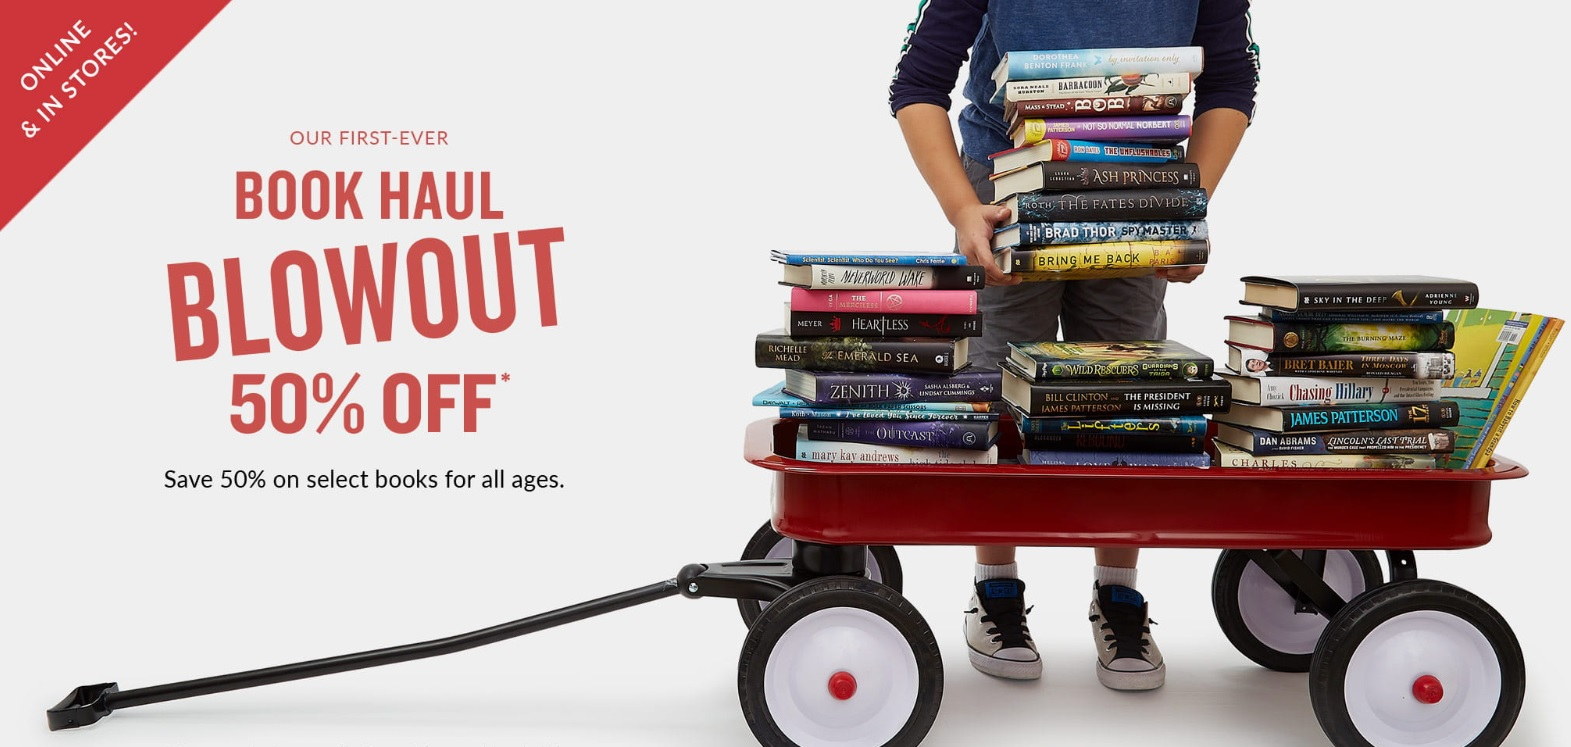 Barnes Noble Launches First Ever Book Haul Blowout With 50 Off